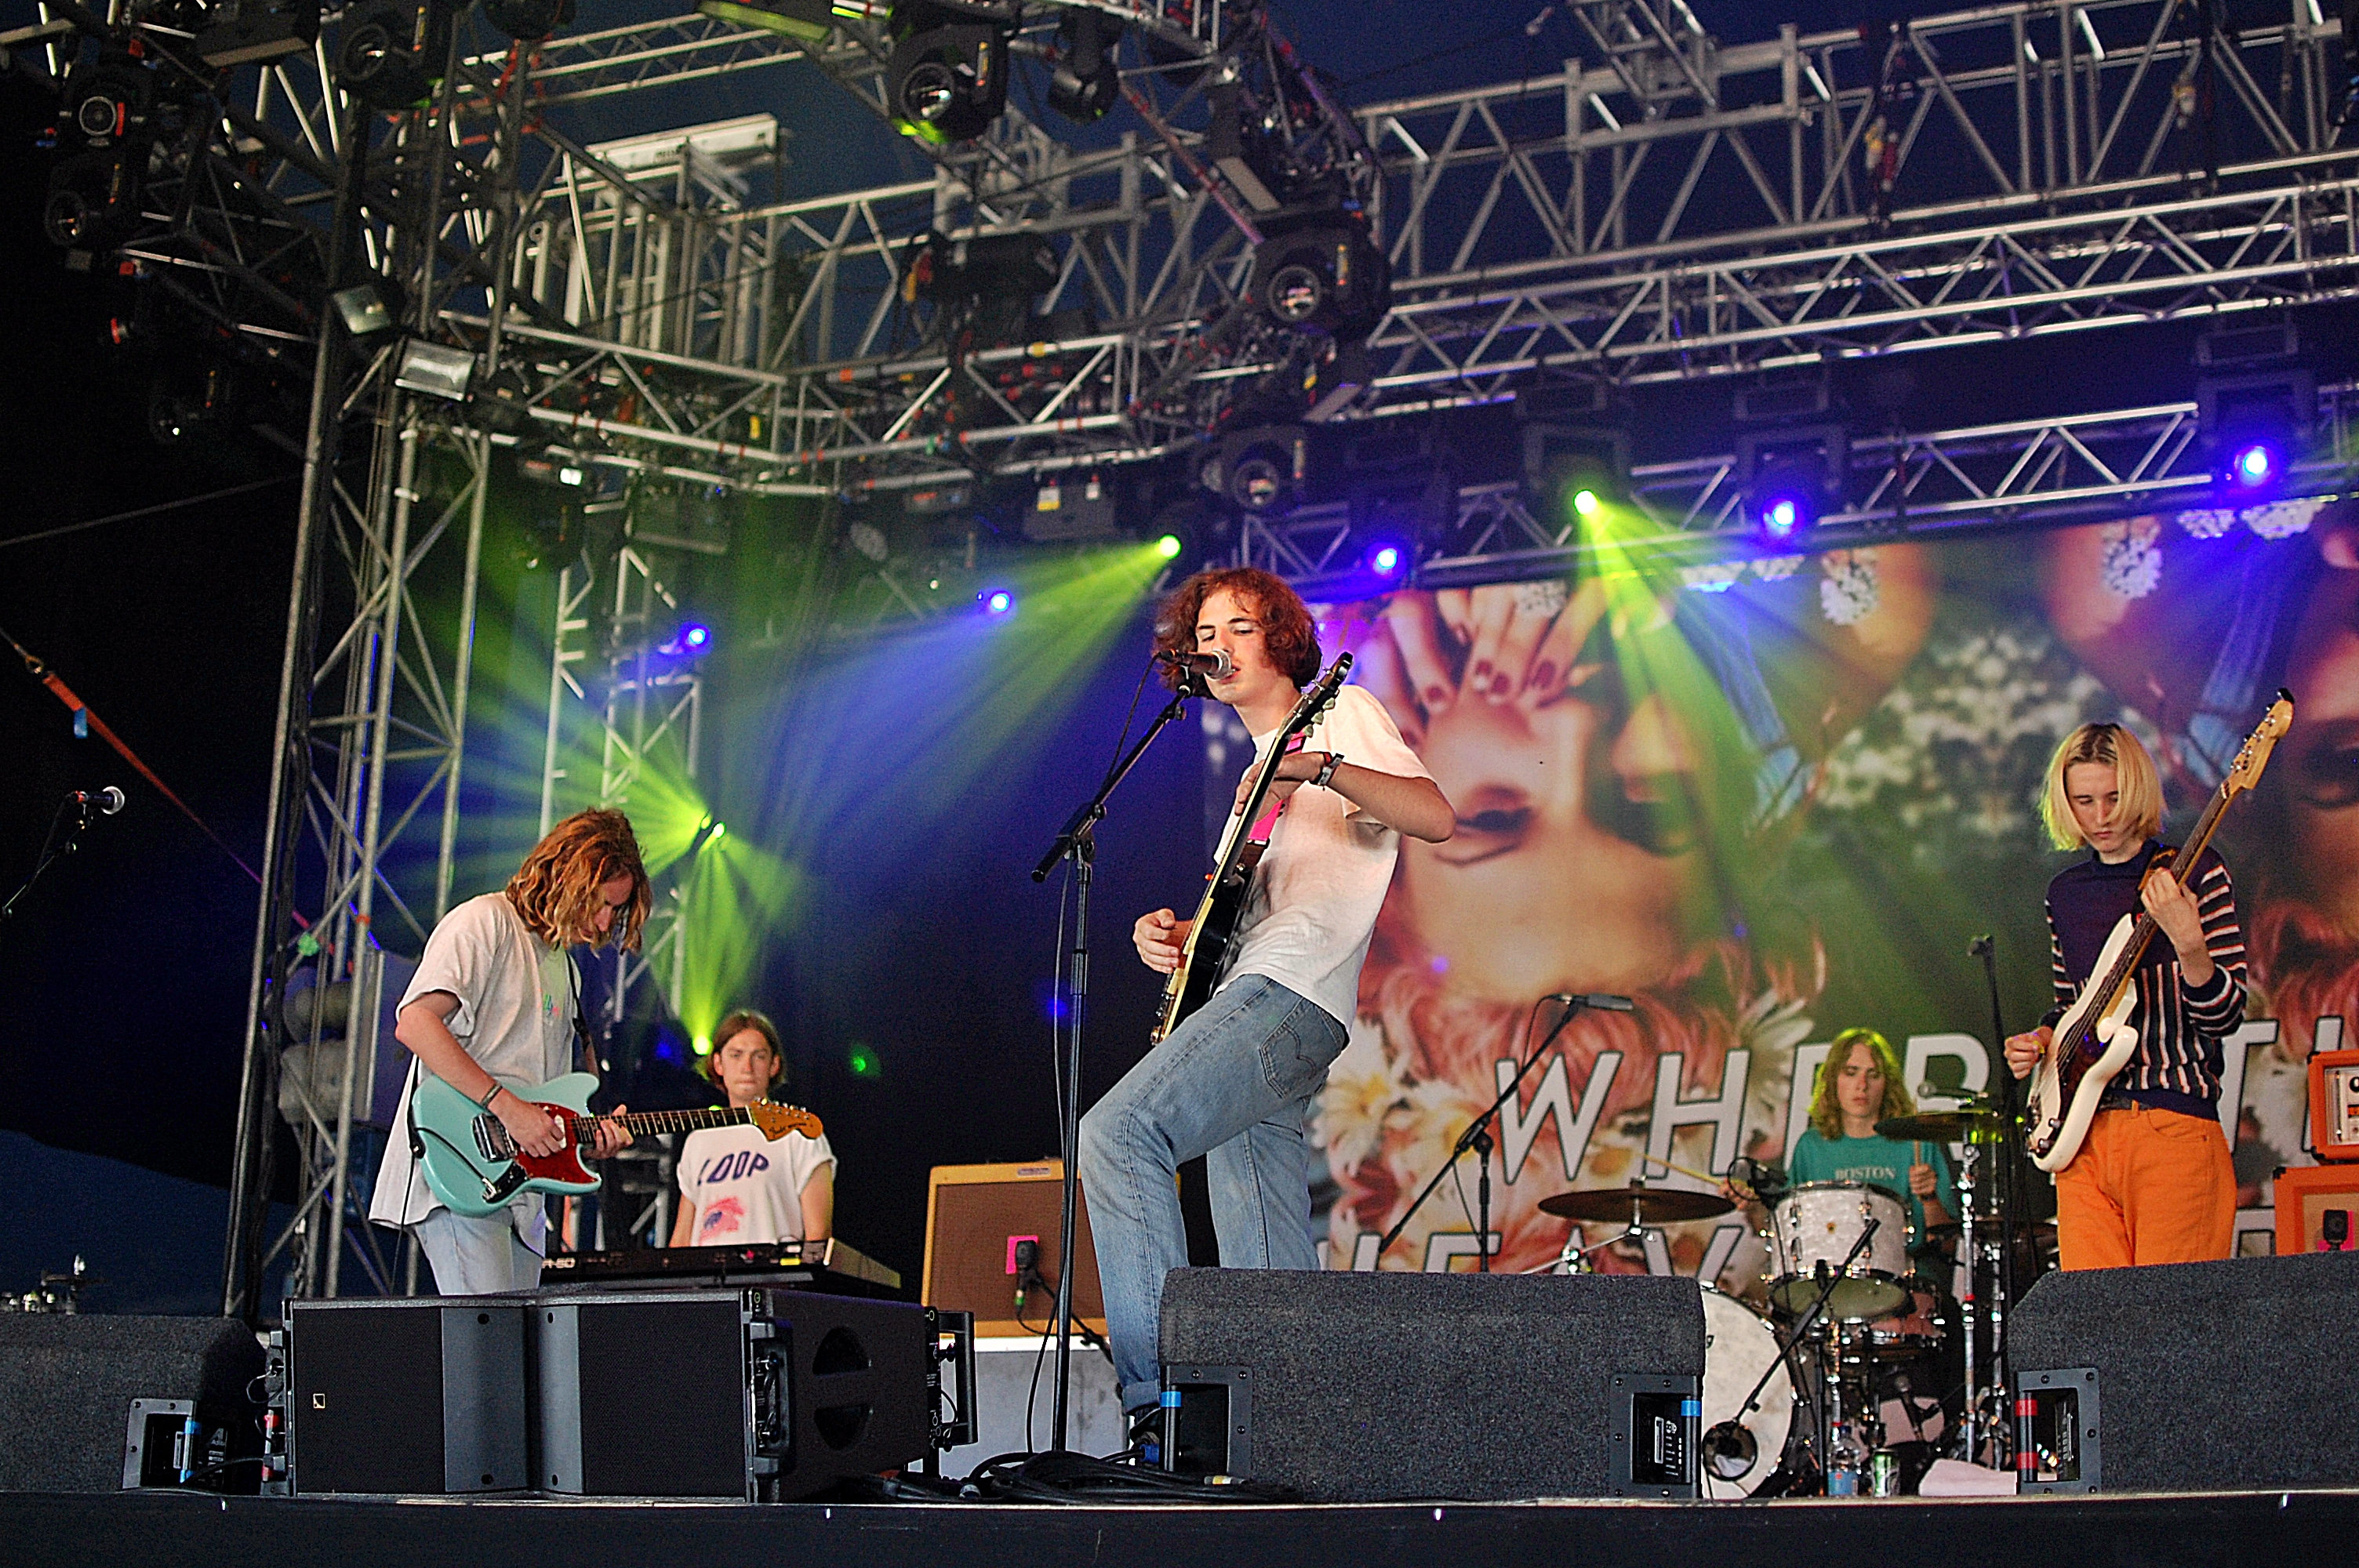 SWIM DEEP at WAKESTOCK 2013